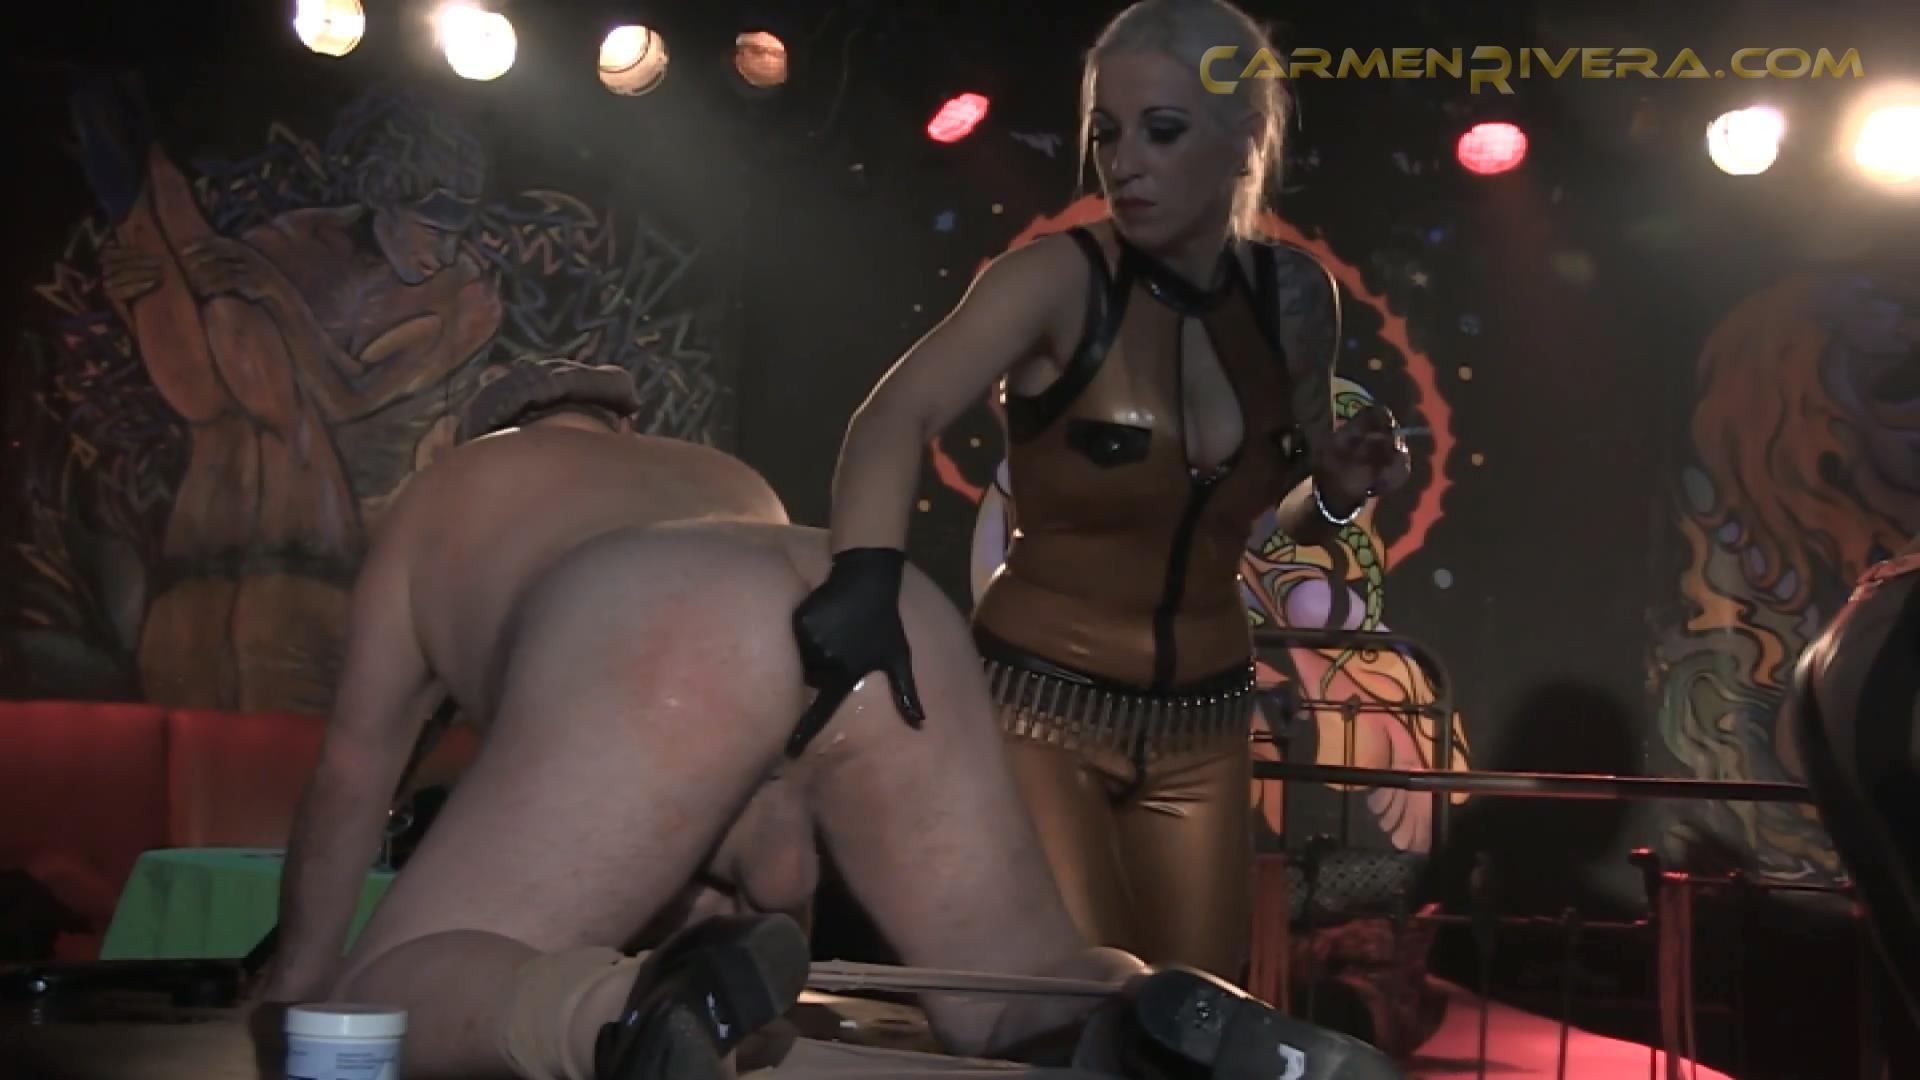 Baronessa Carmen Di Rivera In Scene: What a Fuck / KitKat Club Part 4 - YOURMISTRESS - FULL HD/1080p/MP4